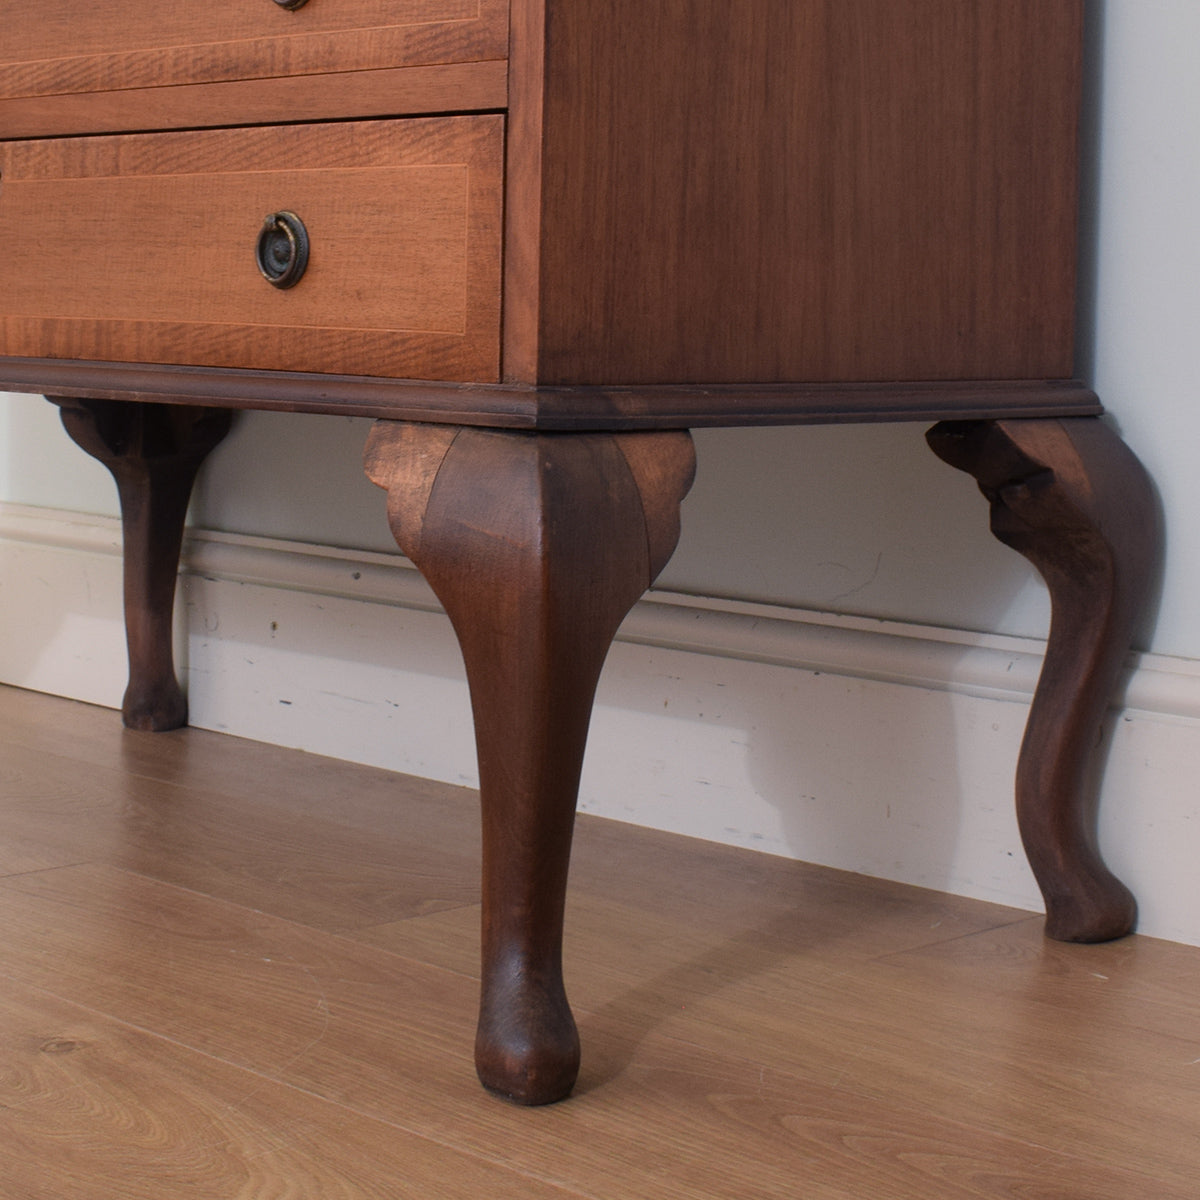 Restored Mahogany Writing Bureau